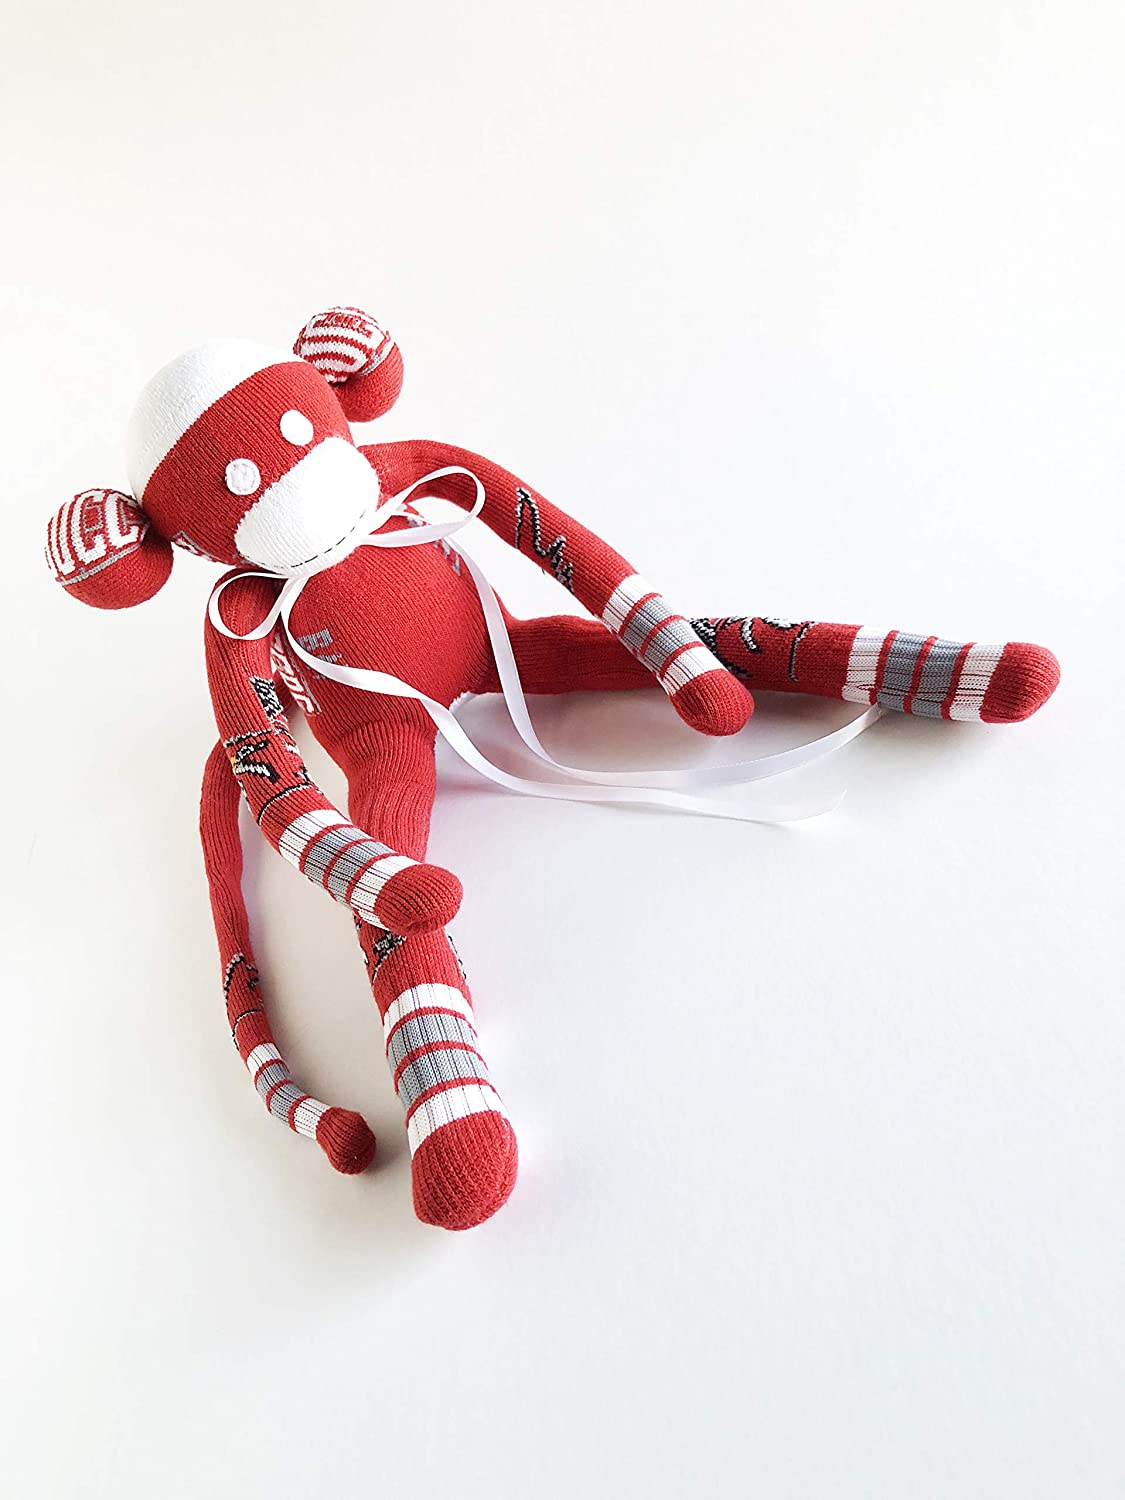 Tampa Bay Buccaneers Themed- Sock Monkey - National Football Conference - Football Sock Monkey - Red Sock Monkey - Buccaneers Sock Monkey